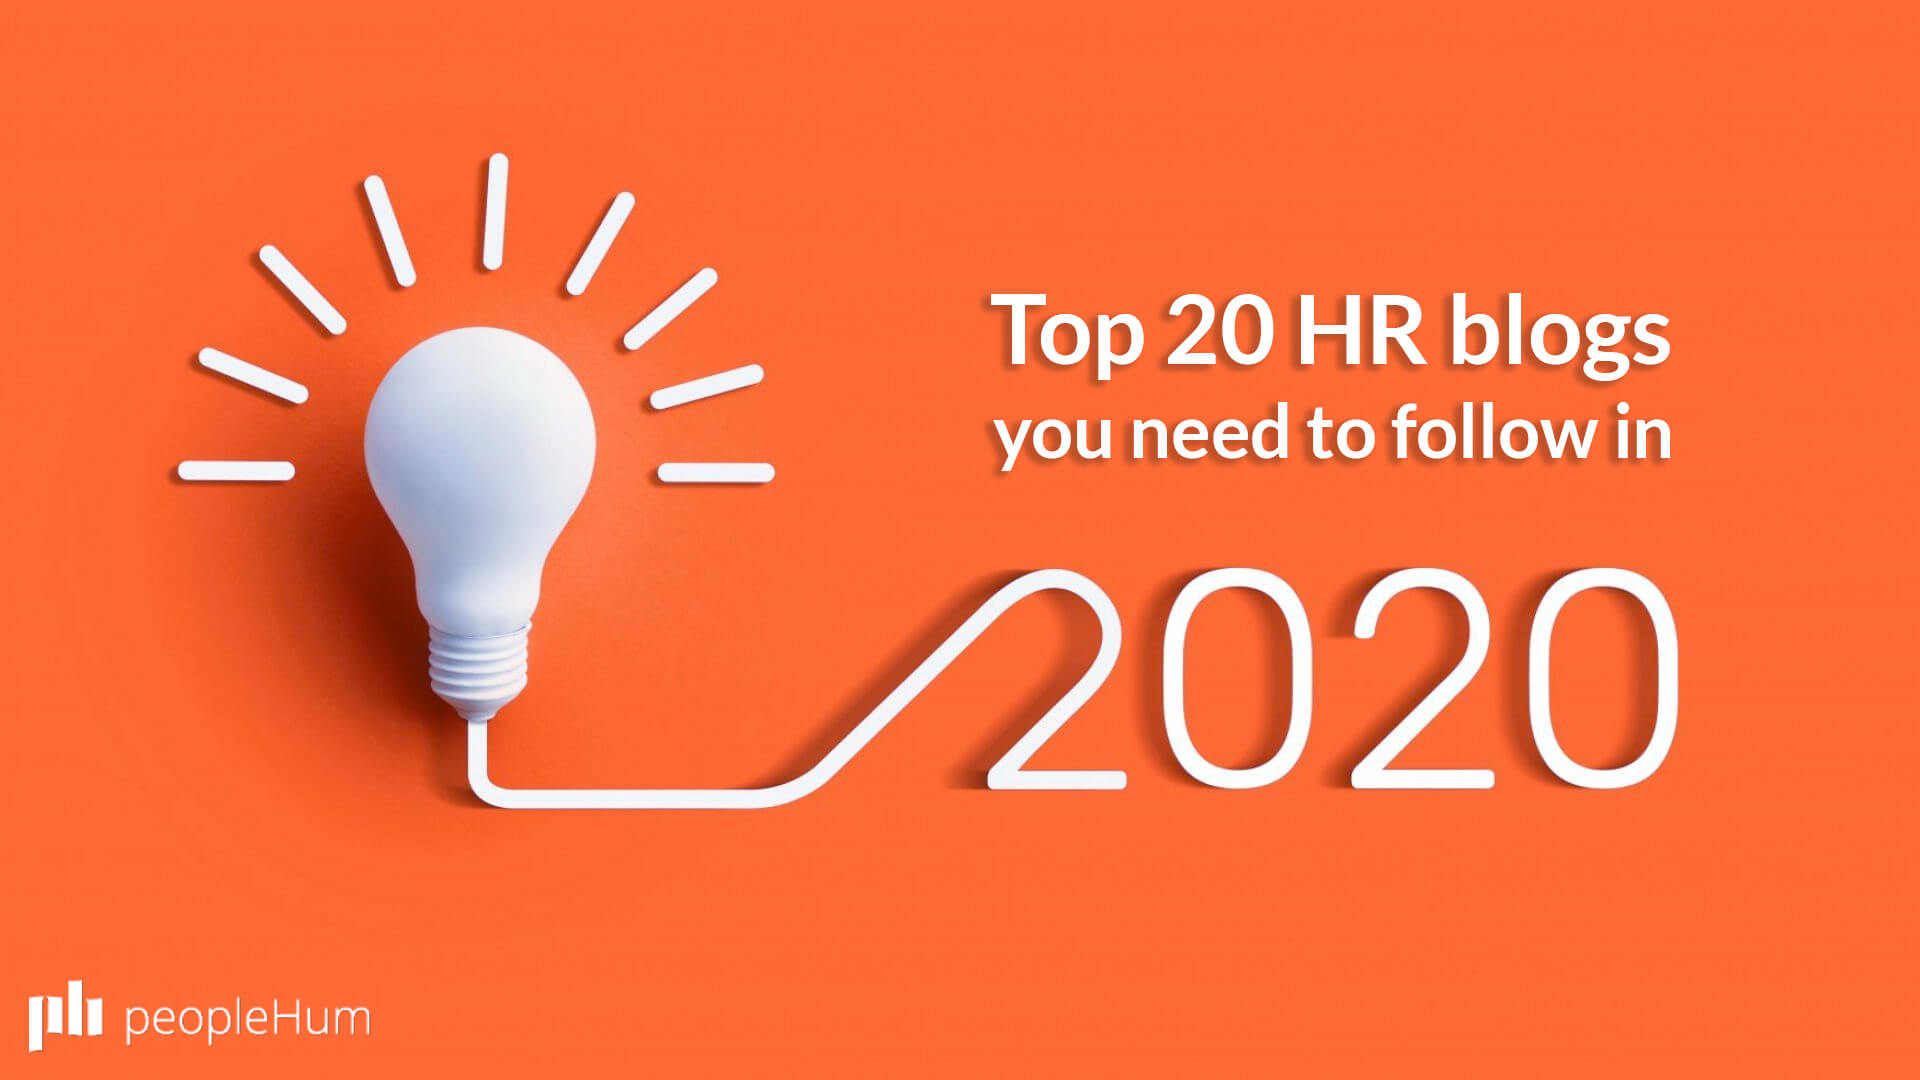 Top 20 HR blogs you need to follow in 2020